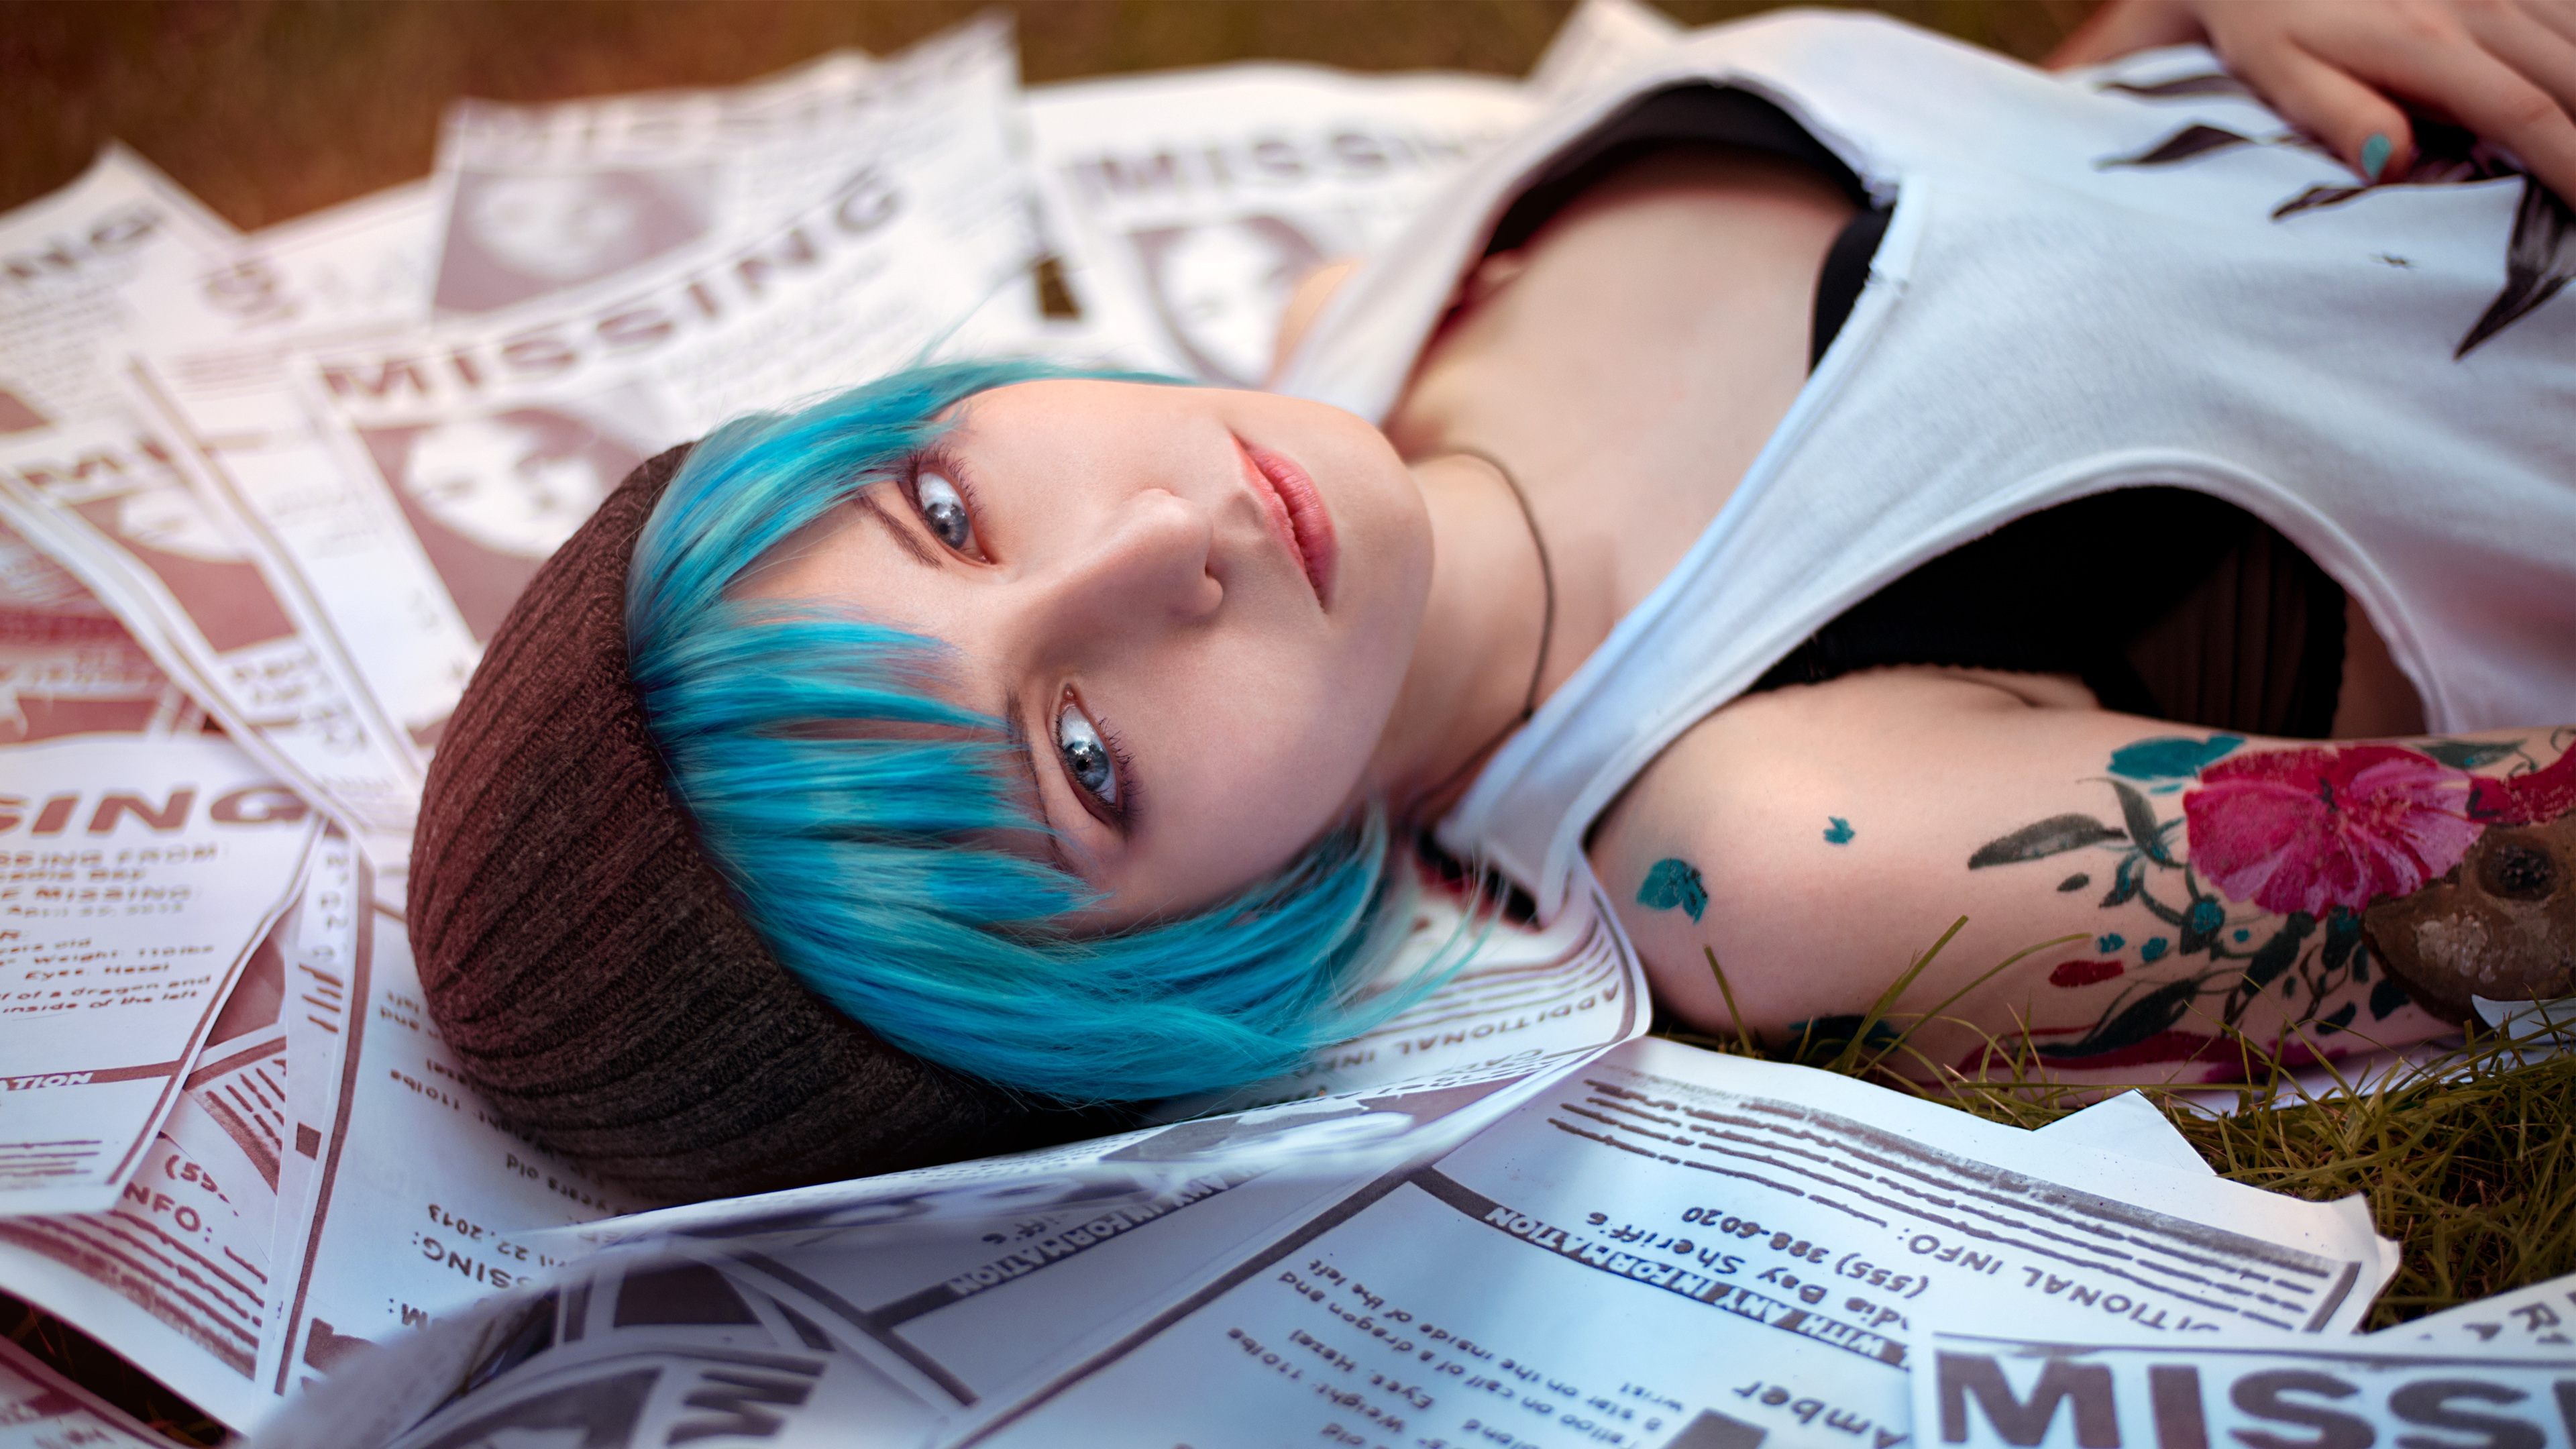 109 Chloe Price Hd Wallpapers Background Images Wallpaper Abyss